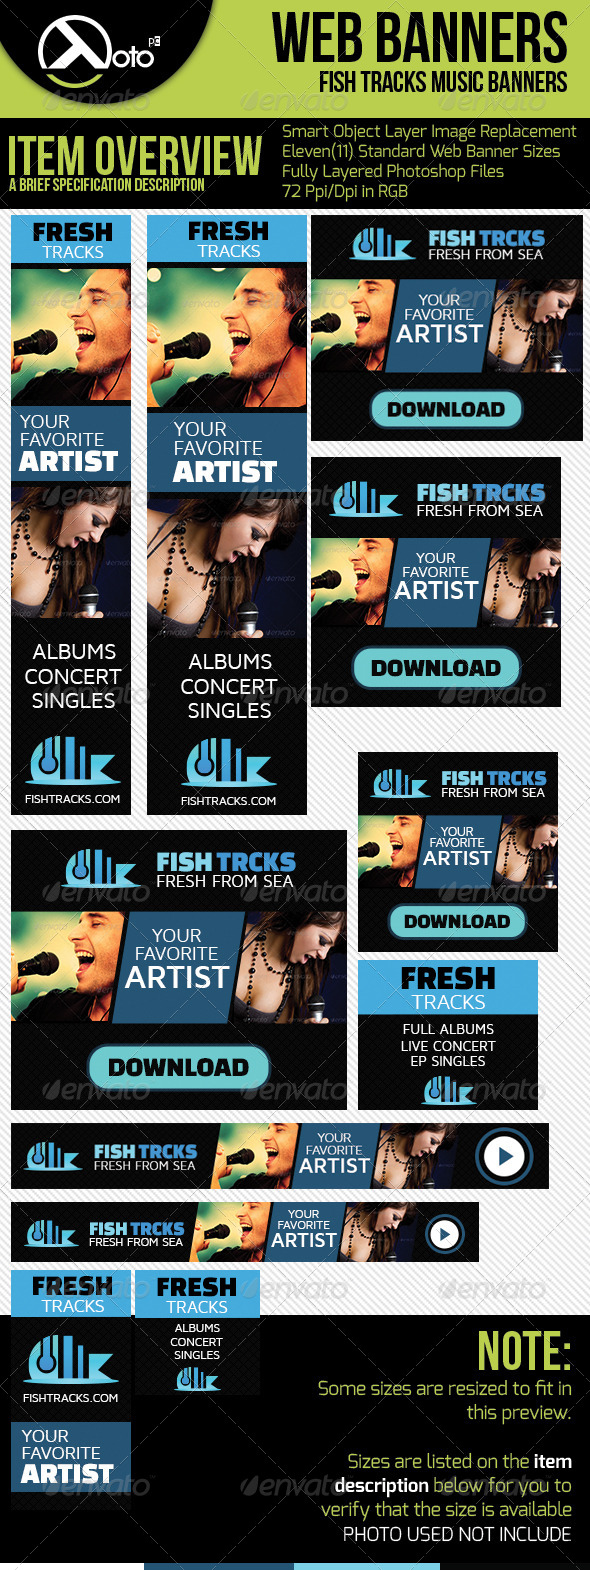 Fish Tracks Online Music Store Web Banners - Banners & Ads Web Elements